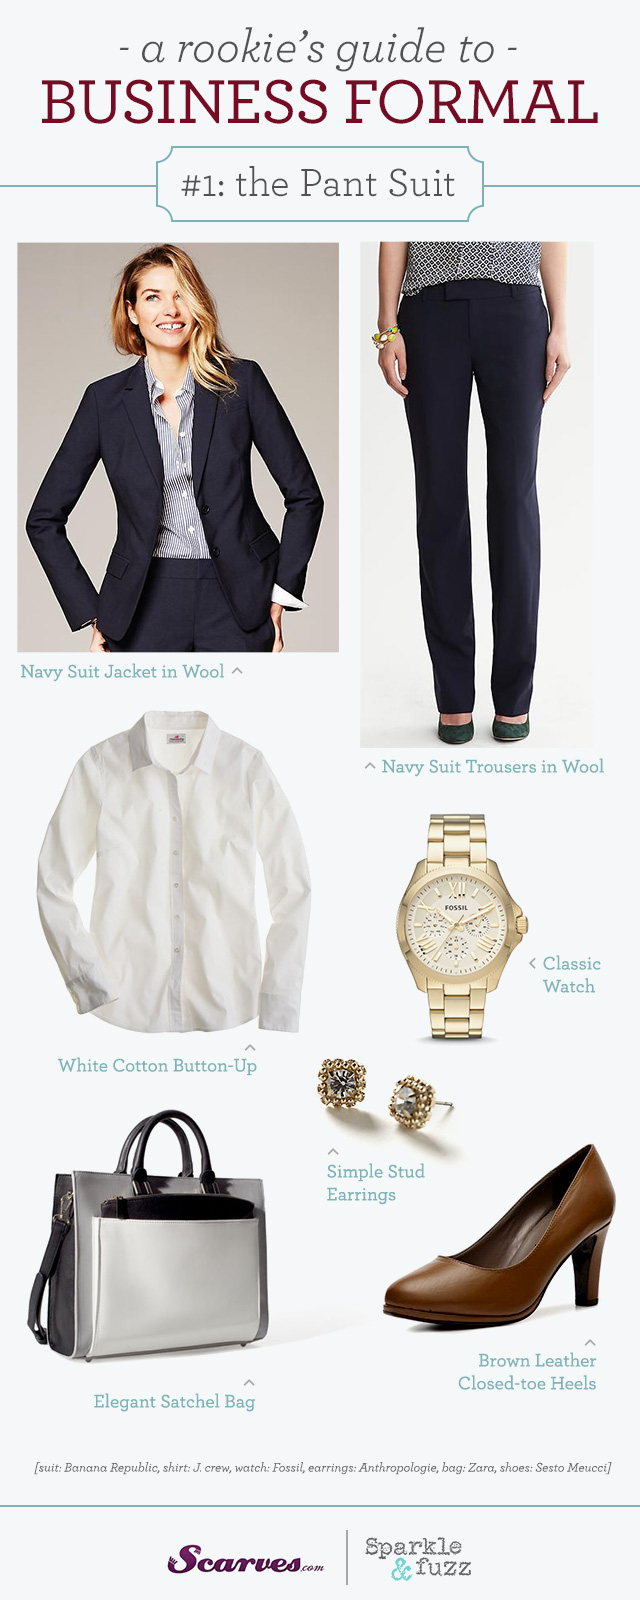 Business Formal: the Pant Suit